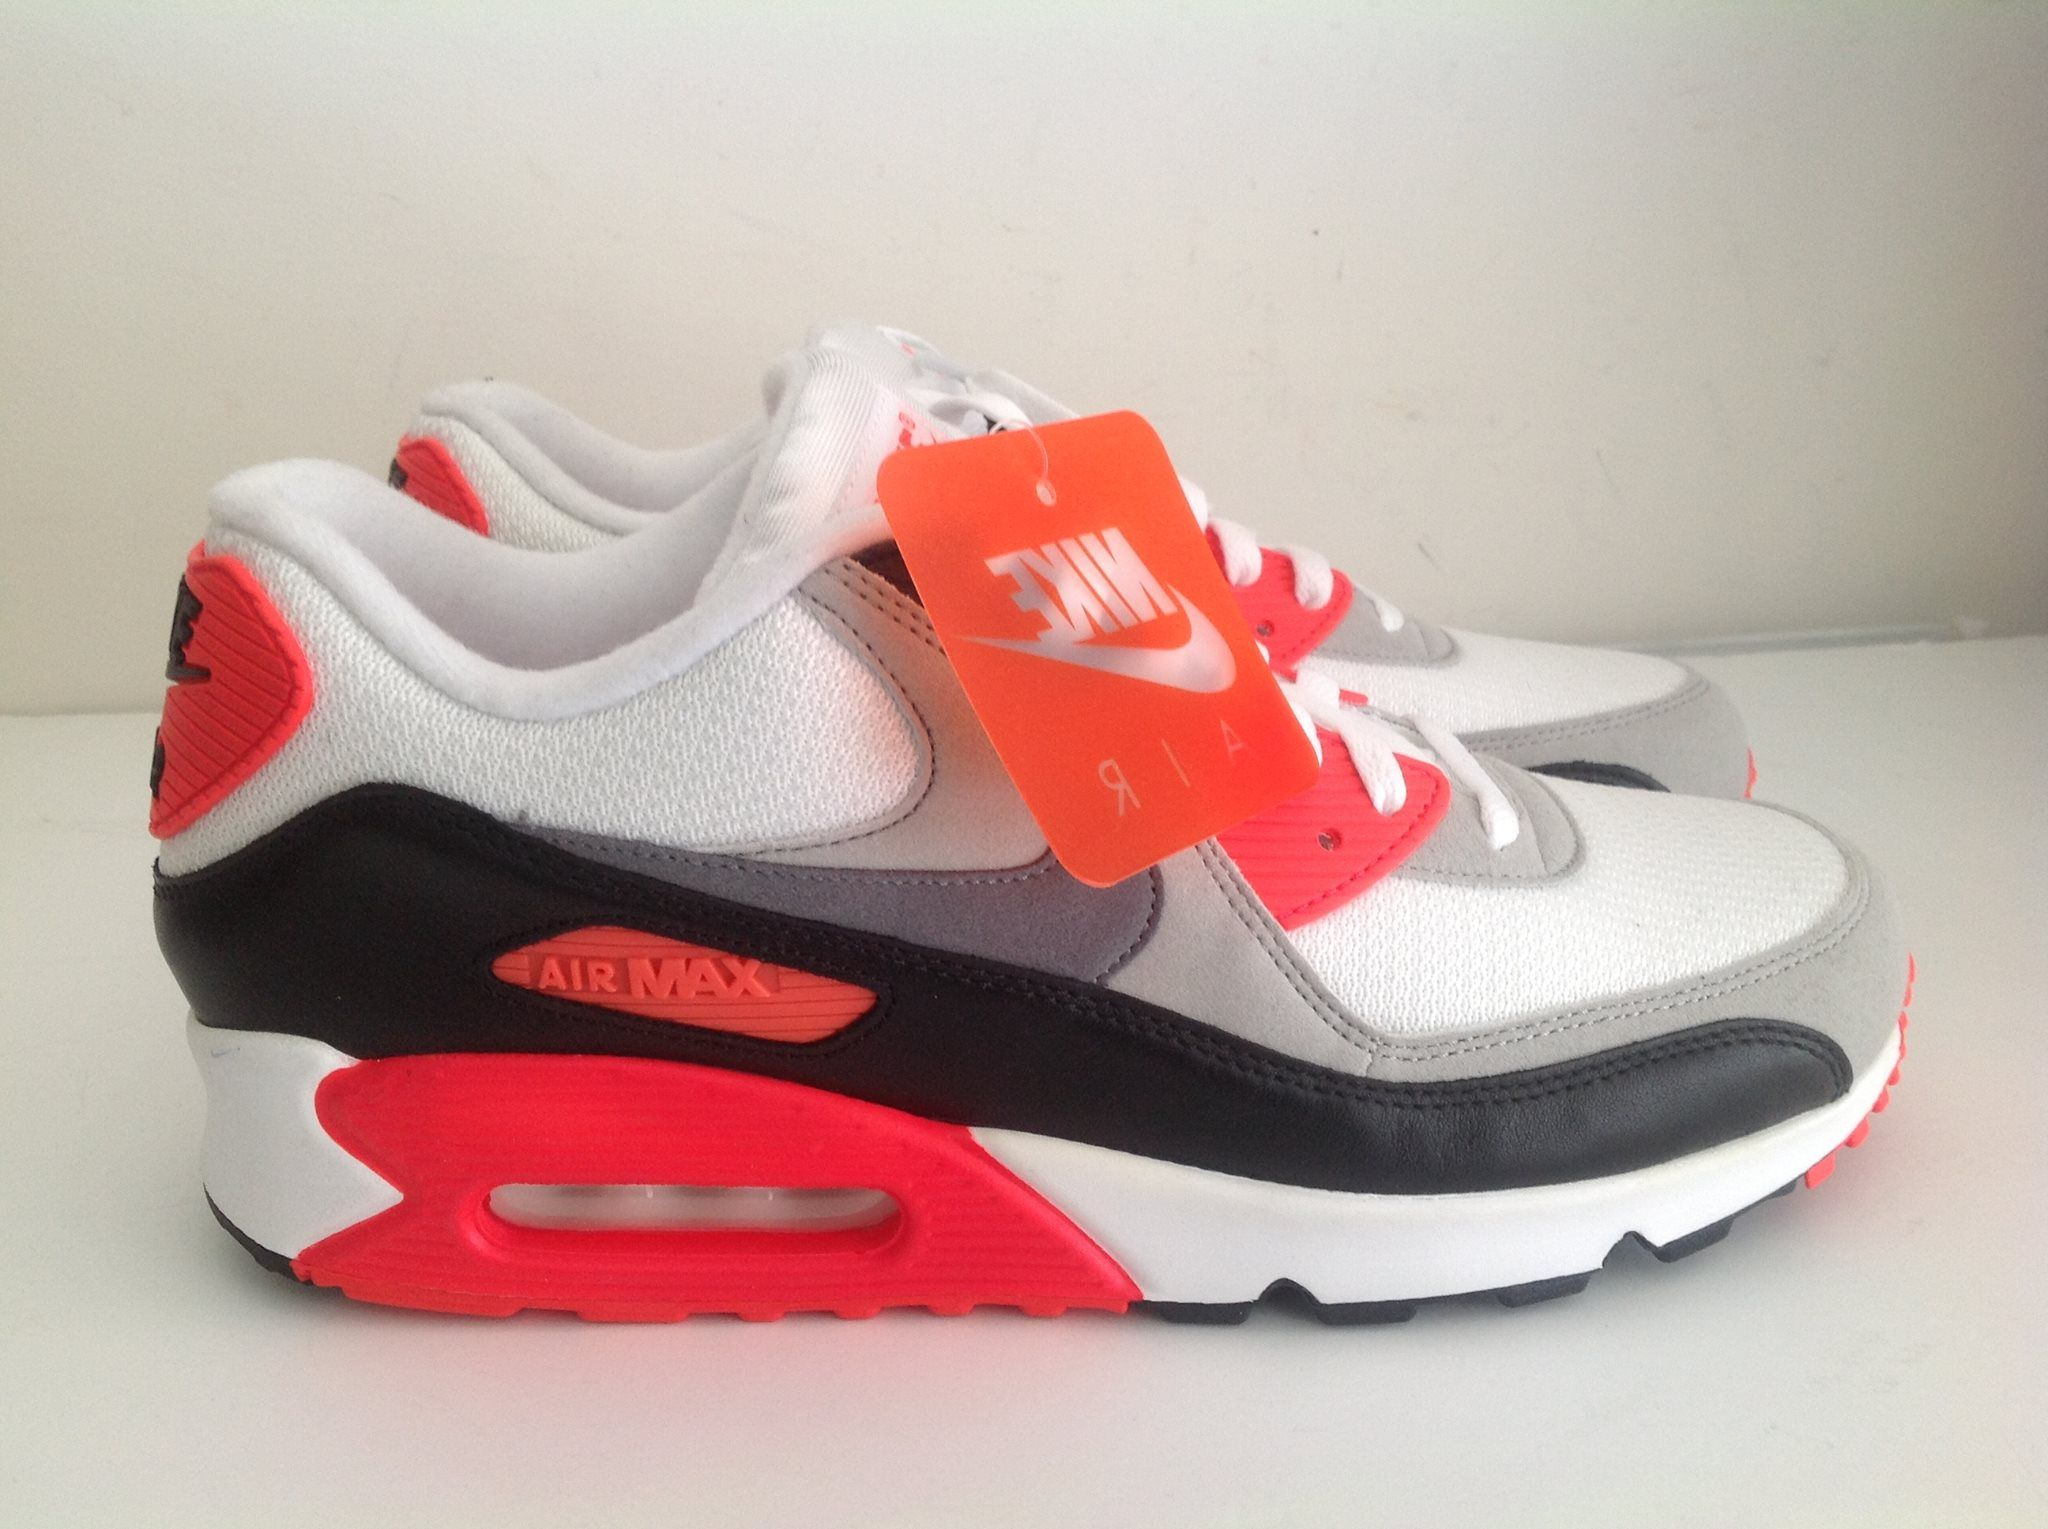 on sale 75d9b 613aa Nike Air Max 90 OG Infrared White Cool Gray Black 725233 106 brand new size  11 with original box style code  725233 106 colorway  white cool gray  infrared ...